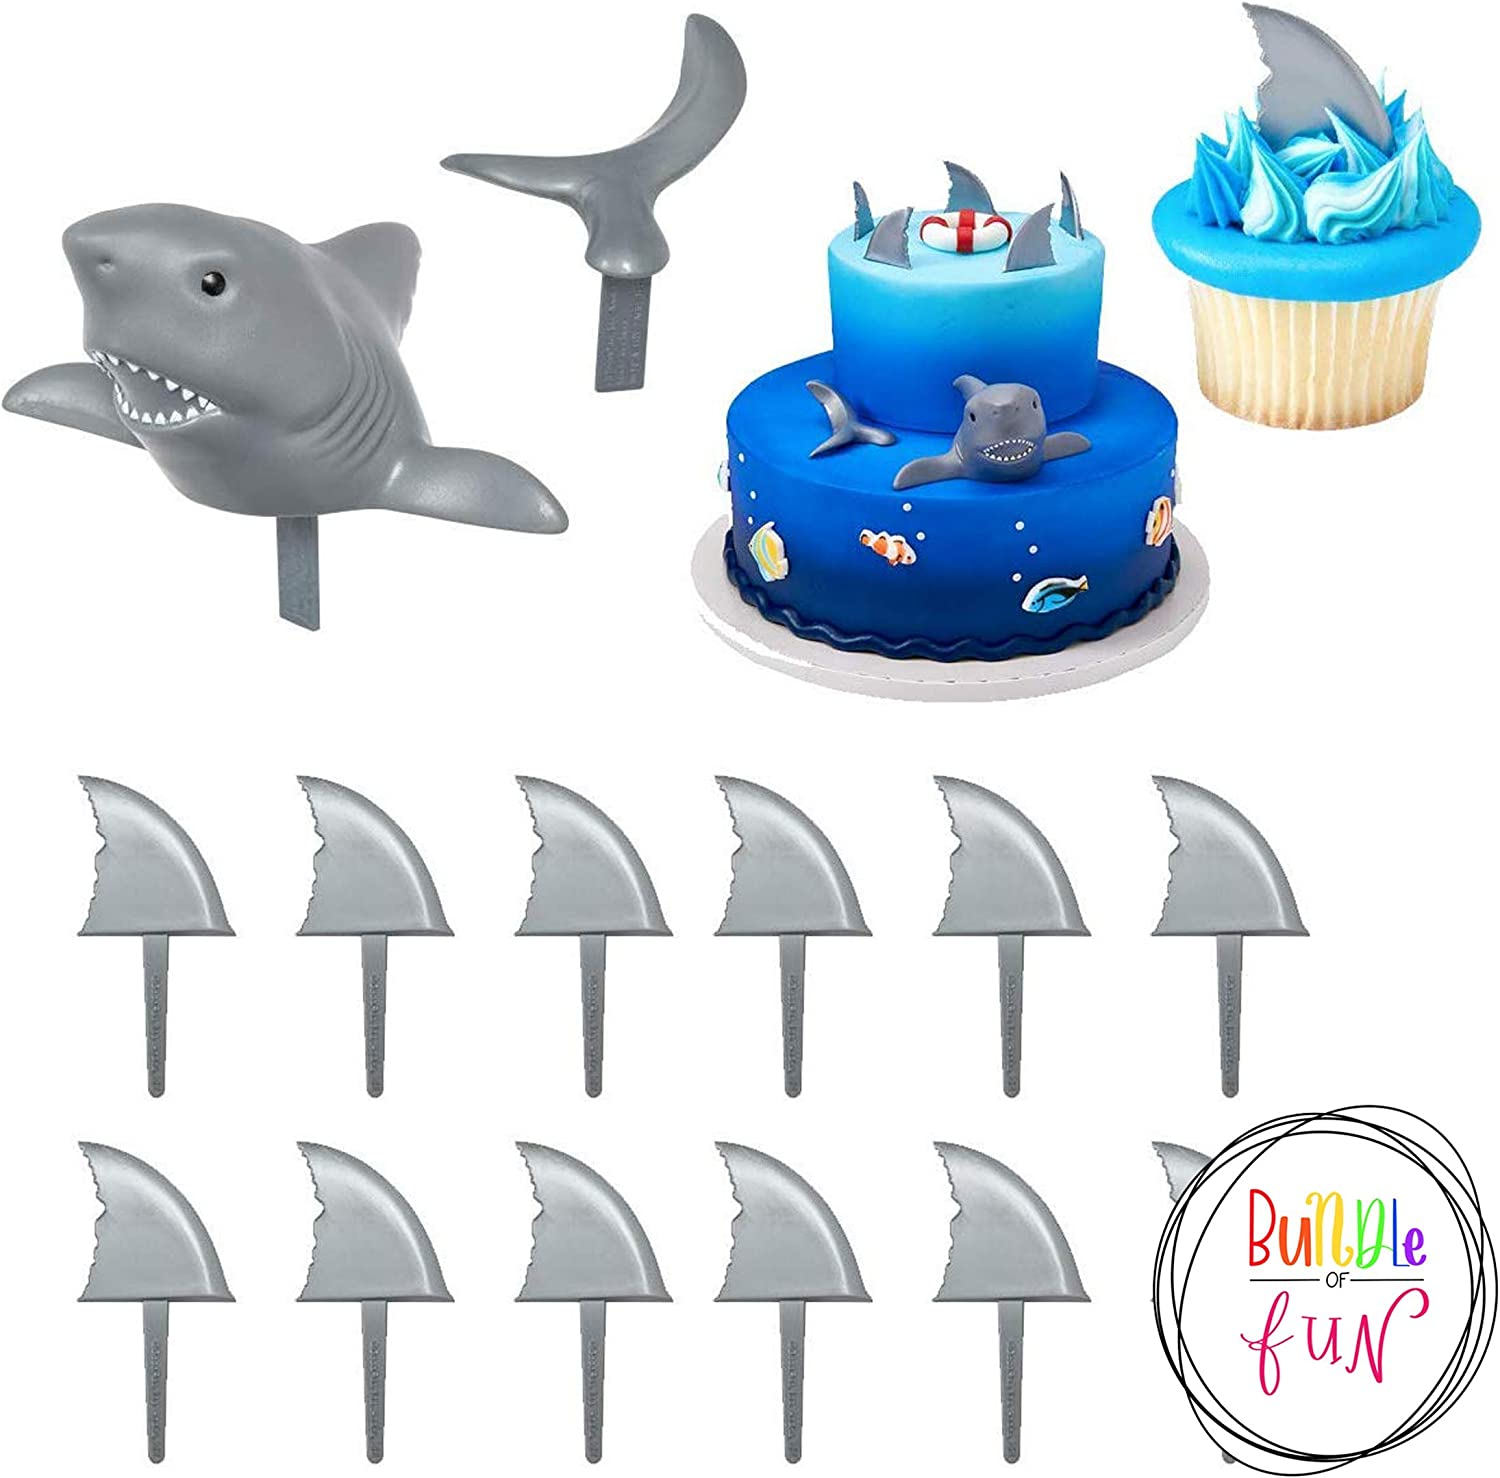 Shark Creations Cake Decorating Set Cake Topper and 24 Shark Fin Cupcake Topper Picks plus Bundle of Fun Sticker